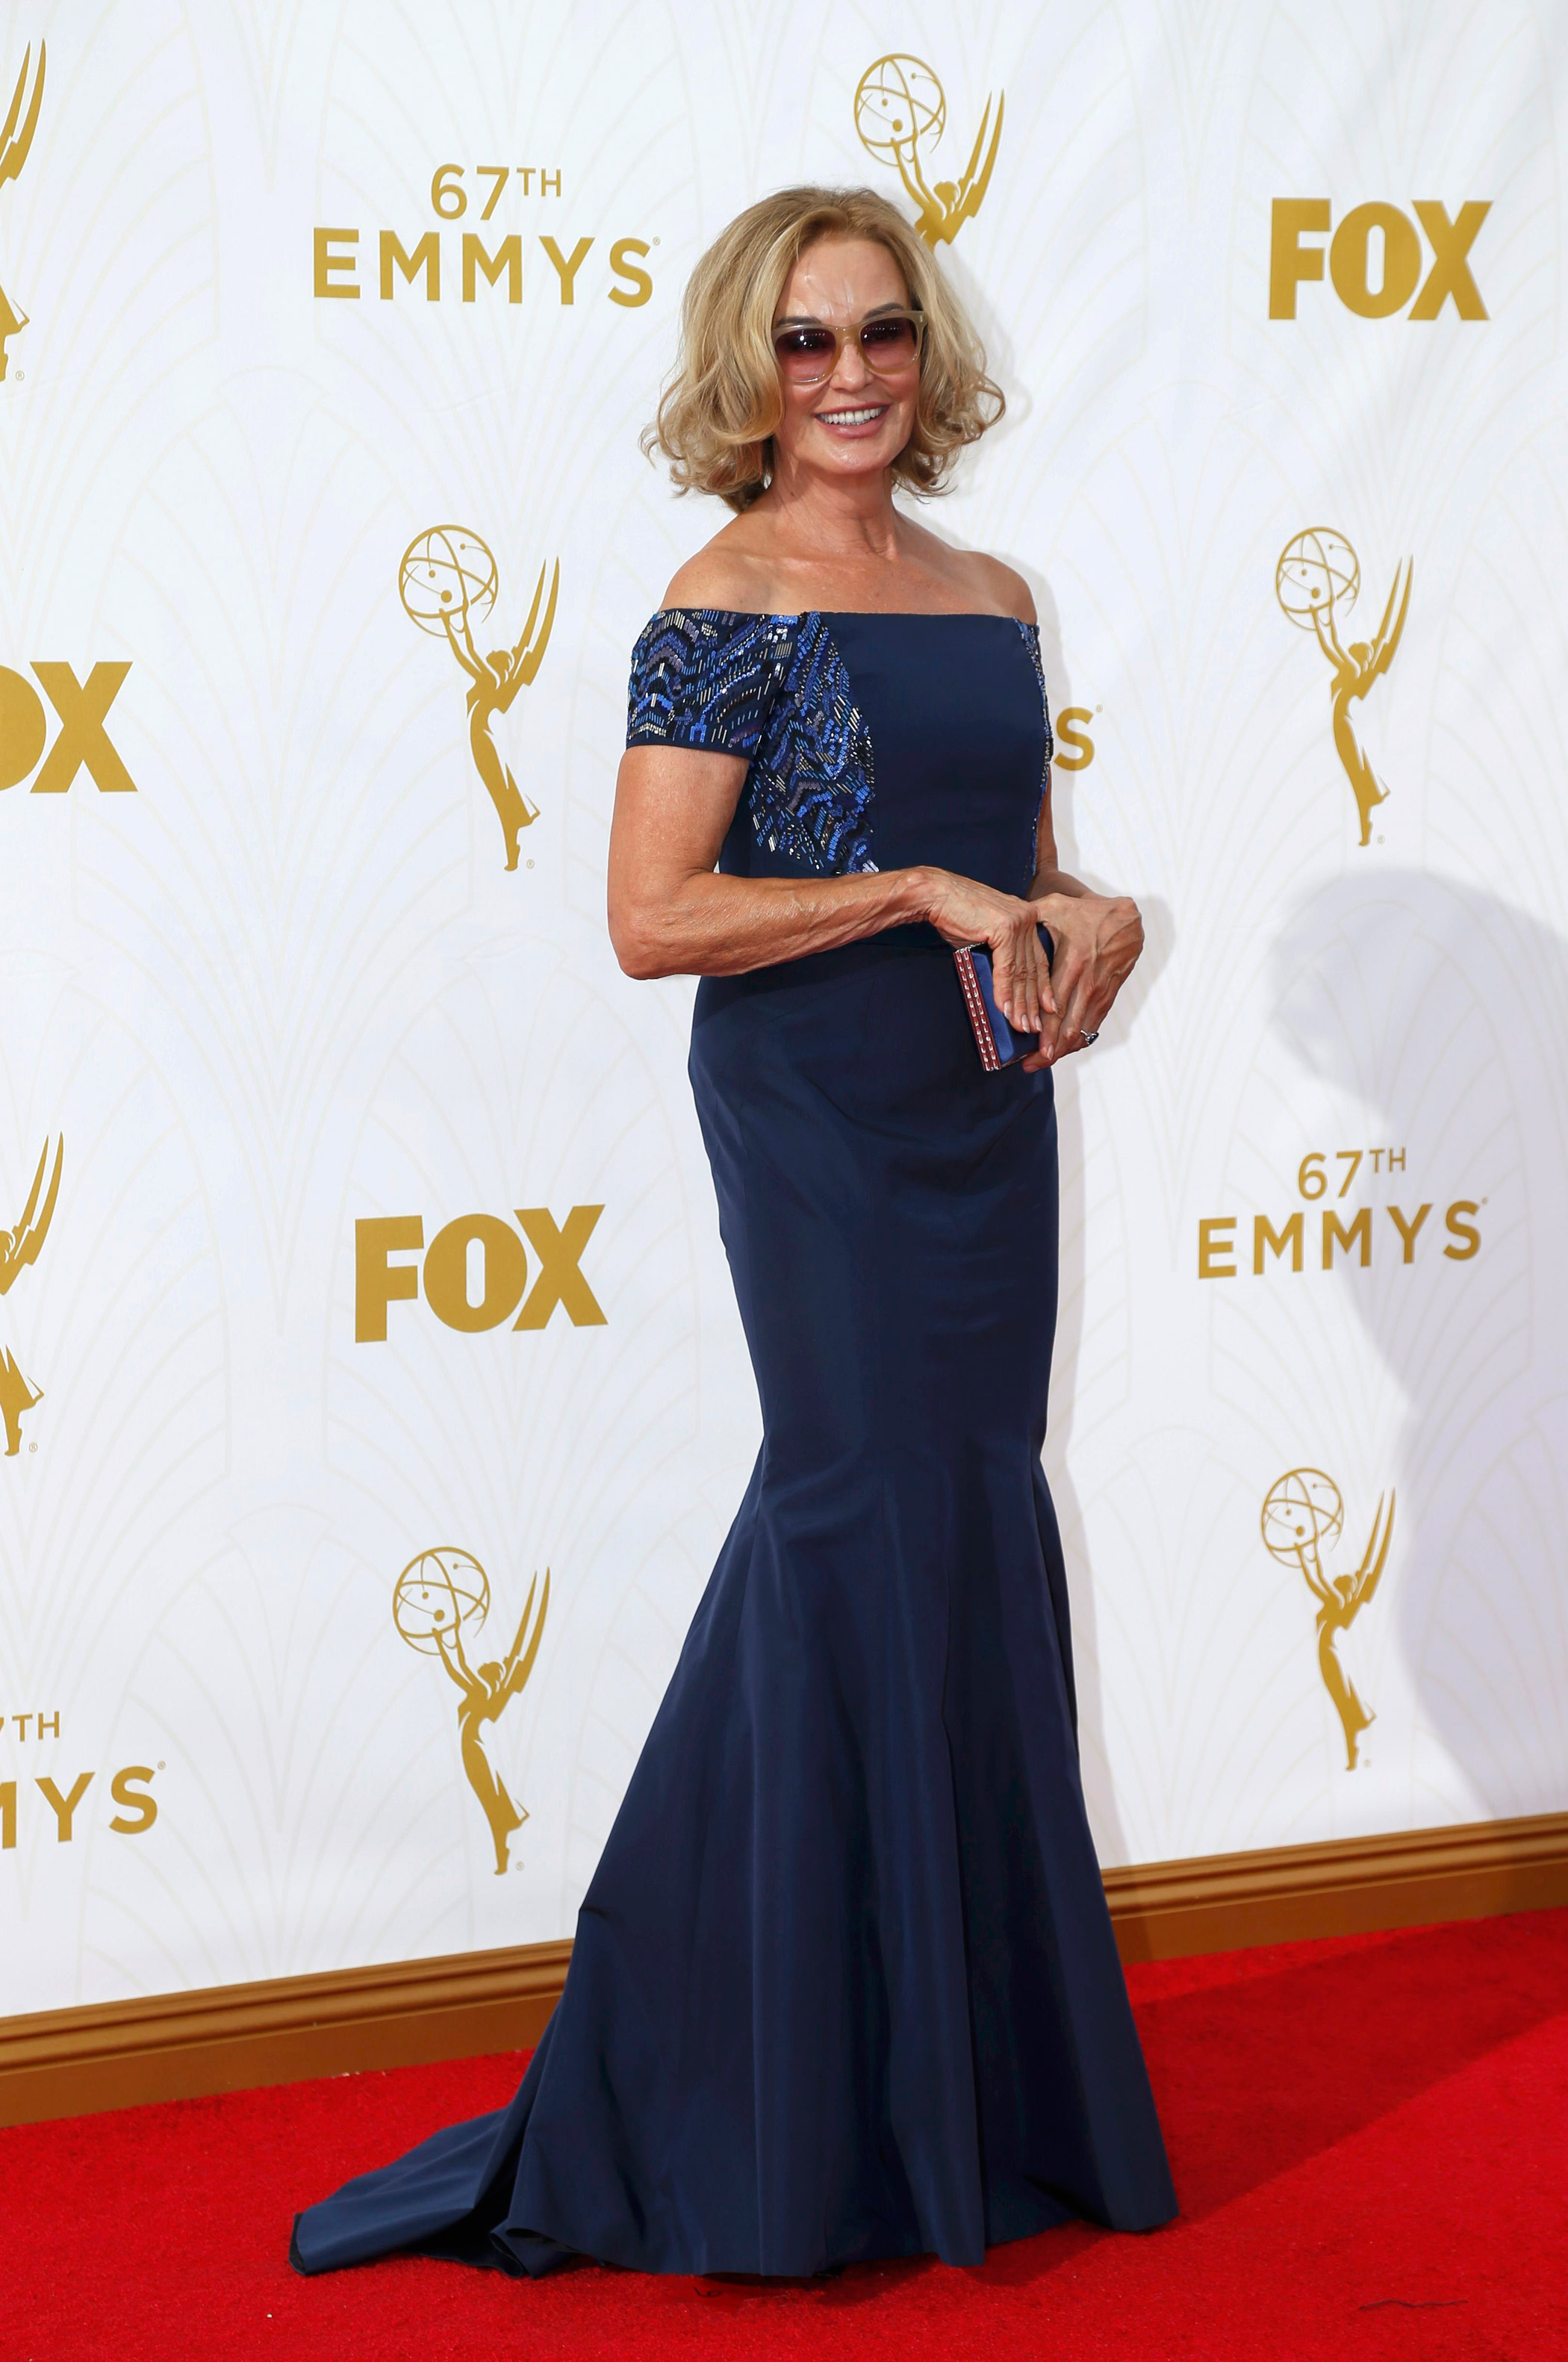 Jessica Lange at the 67th Emmy Award on Sept. 20, 2015 in Los Angeles.